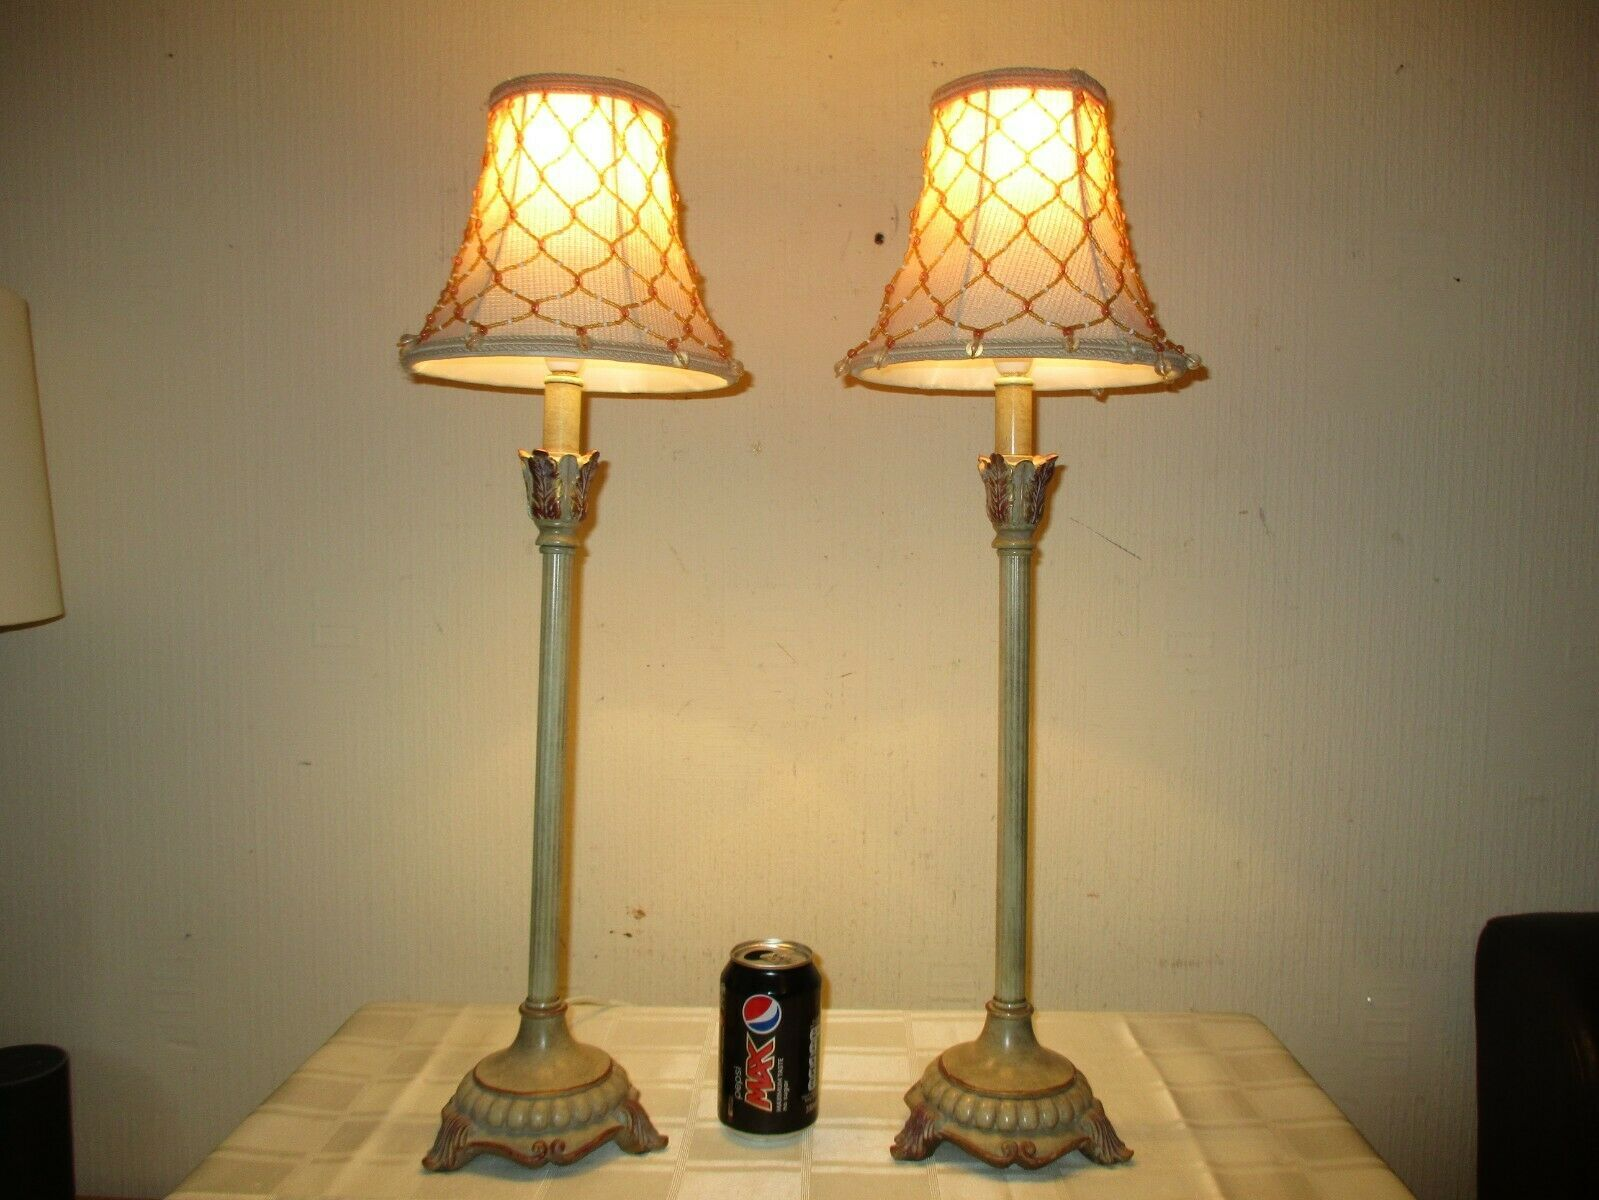 Details about TALL PAIR OF VINTAGE ORNATE CANDLE STICK